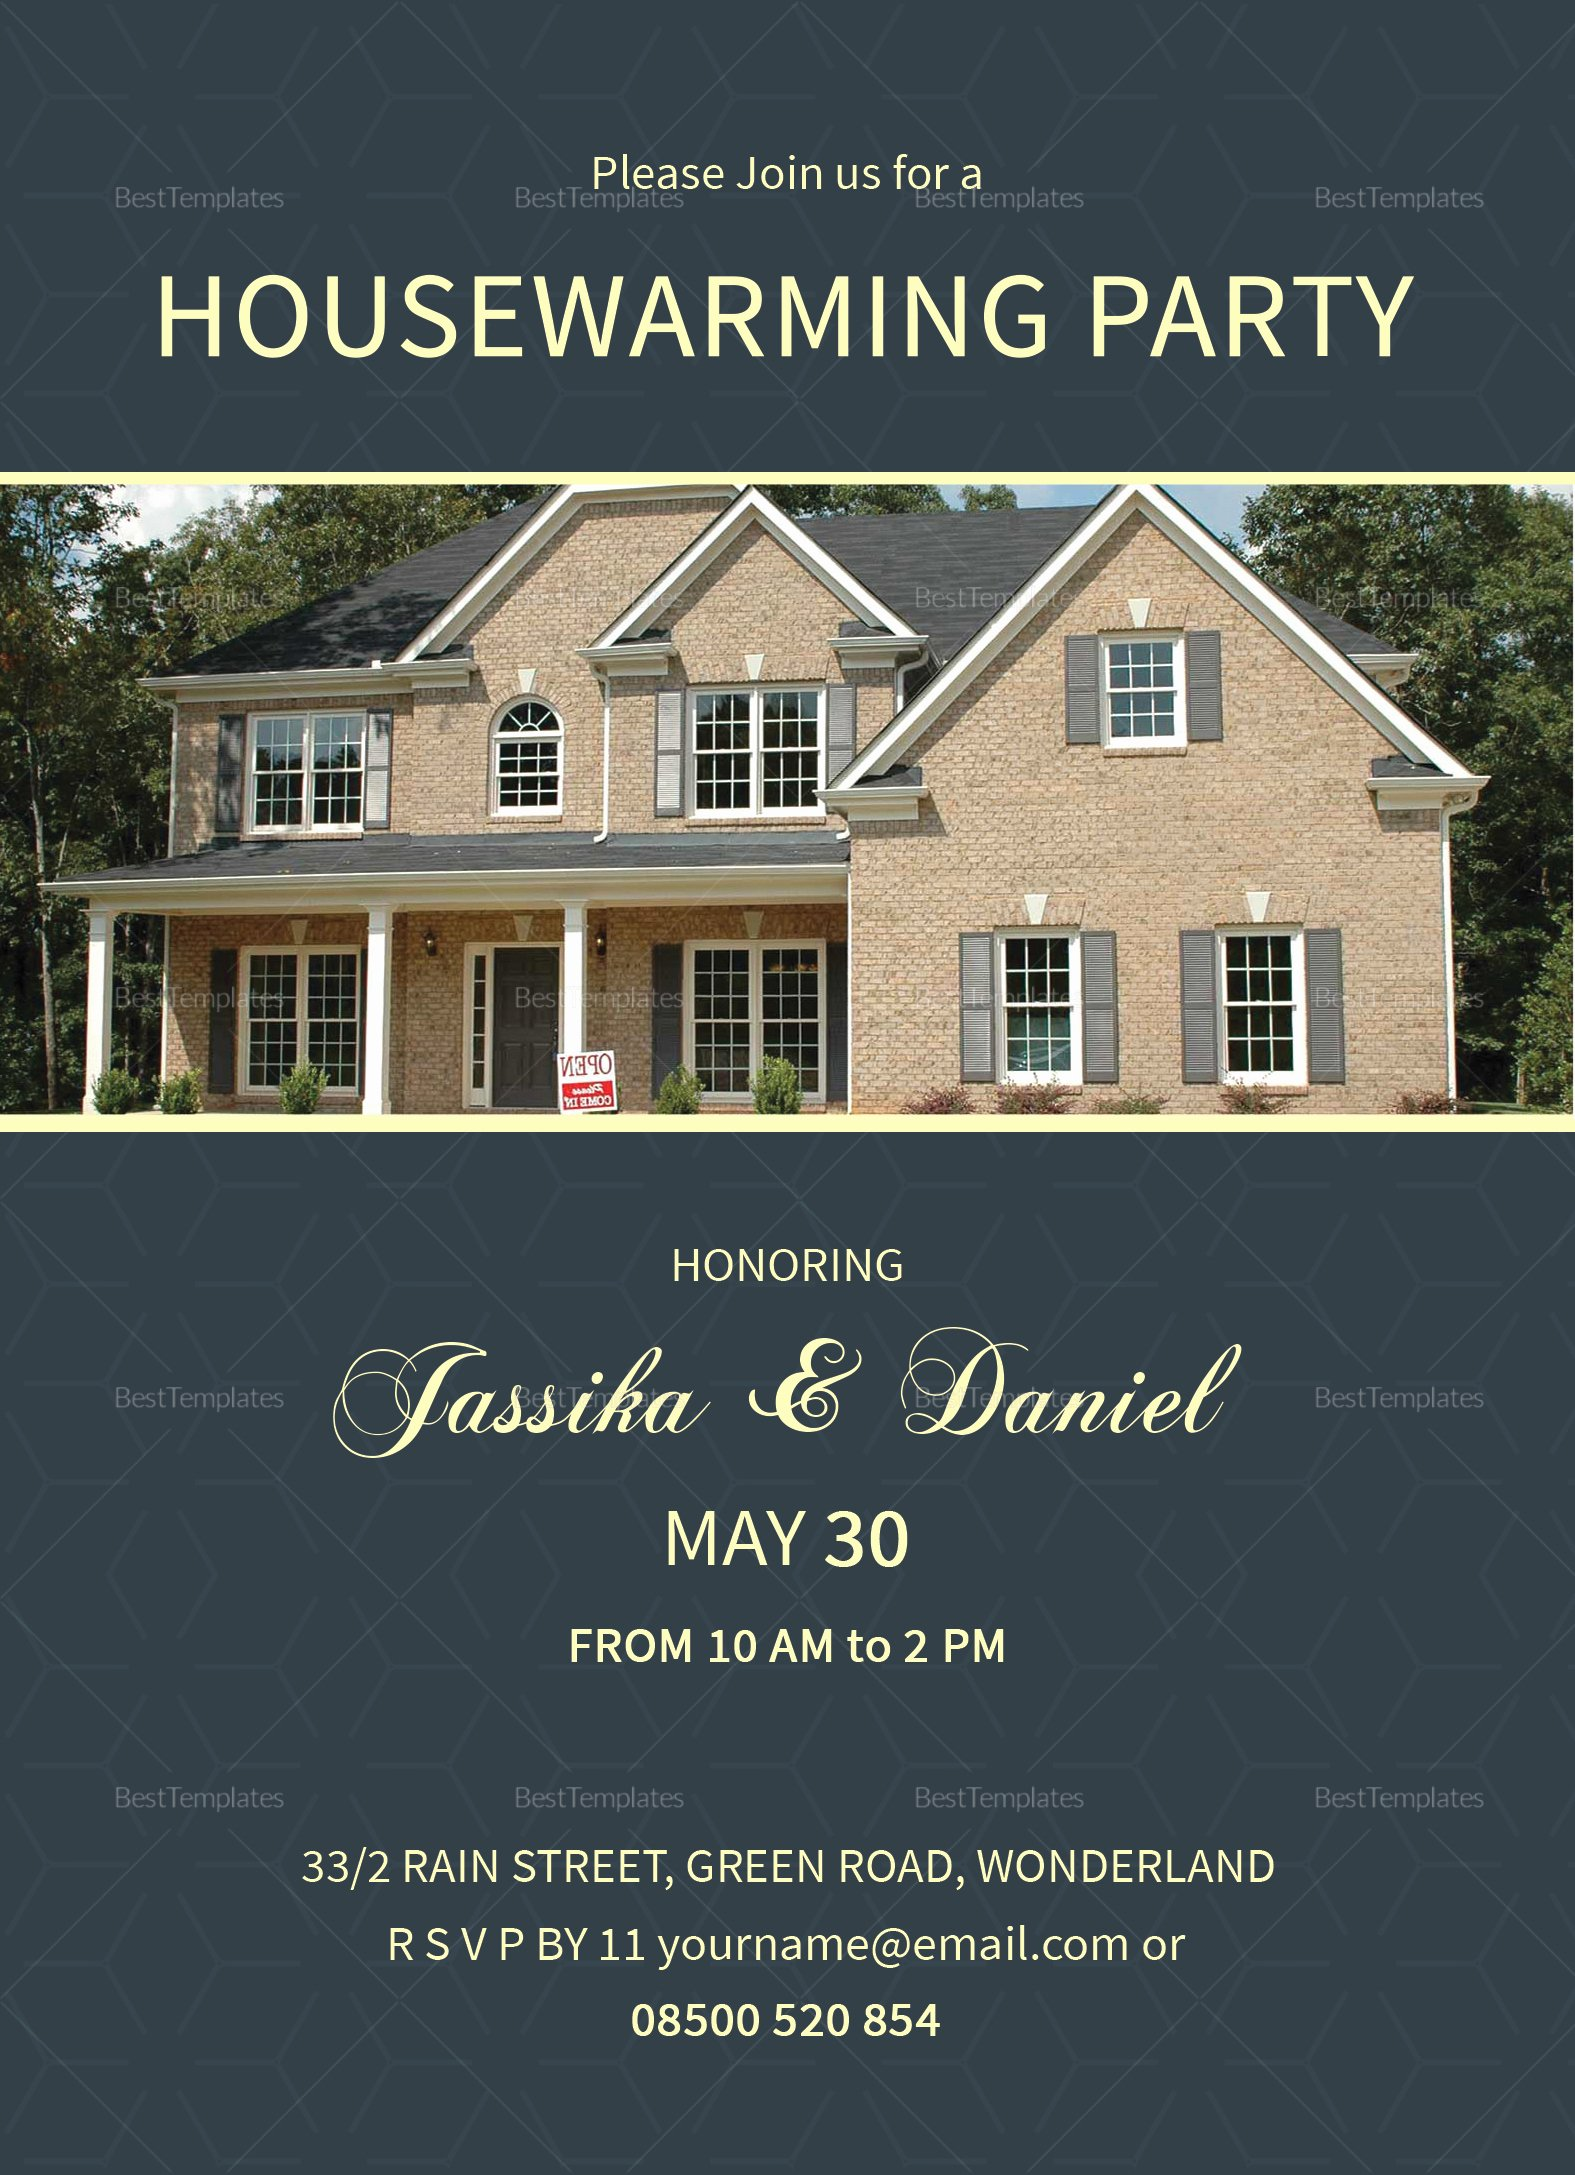 Housewarming Invitation Template Microsoft Word Unique Unique Housewarming Invitation Design Template In Psd Word Publisher